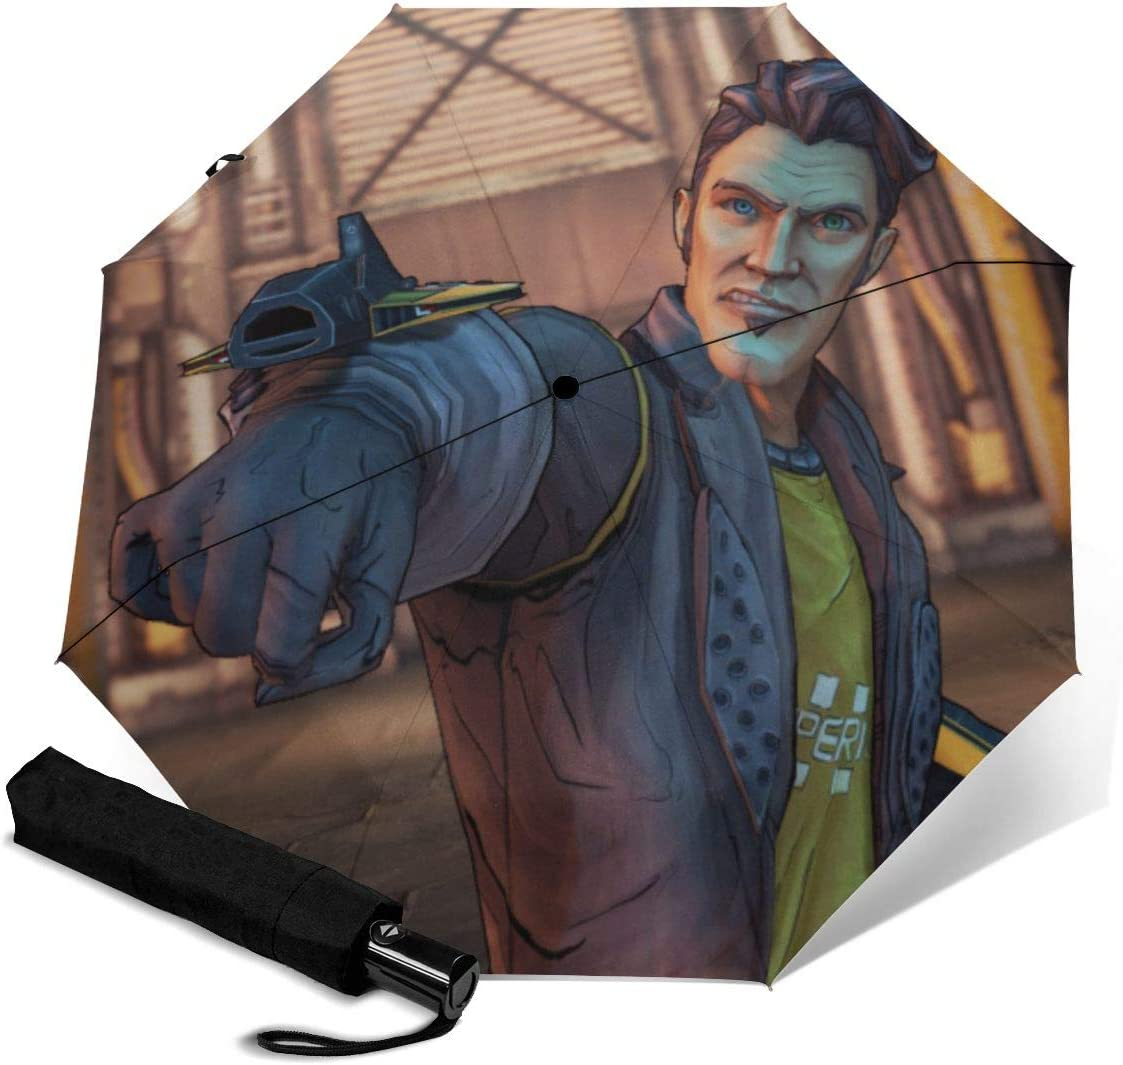 Borderlands Handsome Jack 3D Pattern PG Cloth Lightweight Foldable Tri-fold Umbrealla For Rain Sunshade Anti-UV,Qucik-dry Wind Resistance Automatic Umbrellas